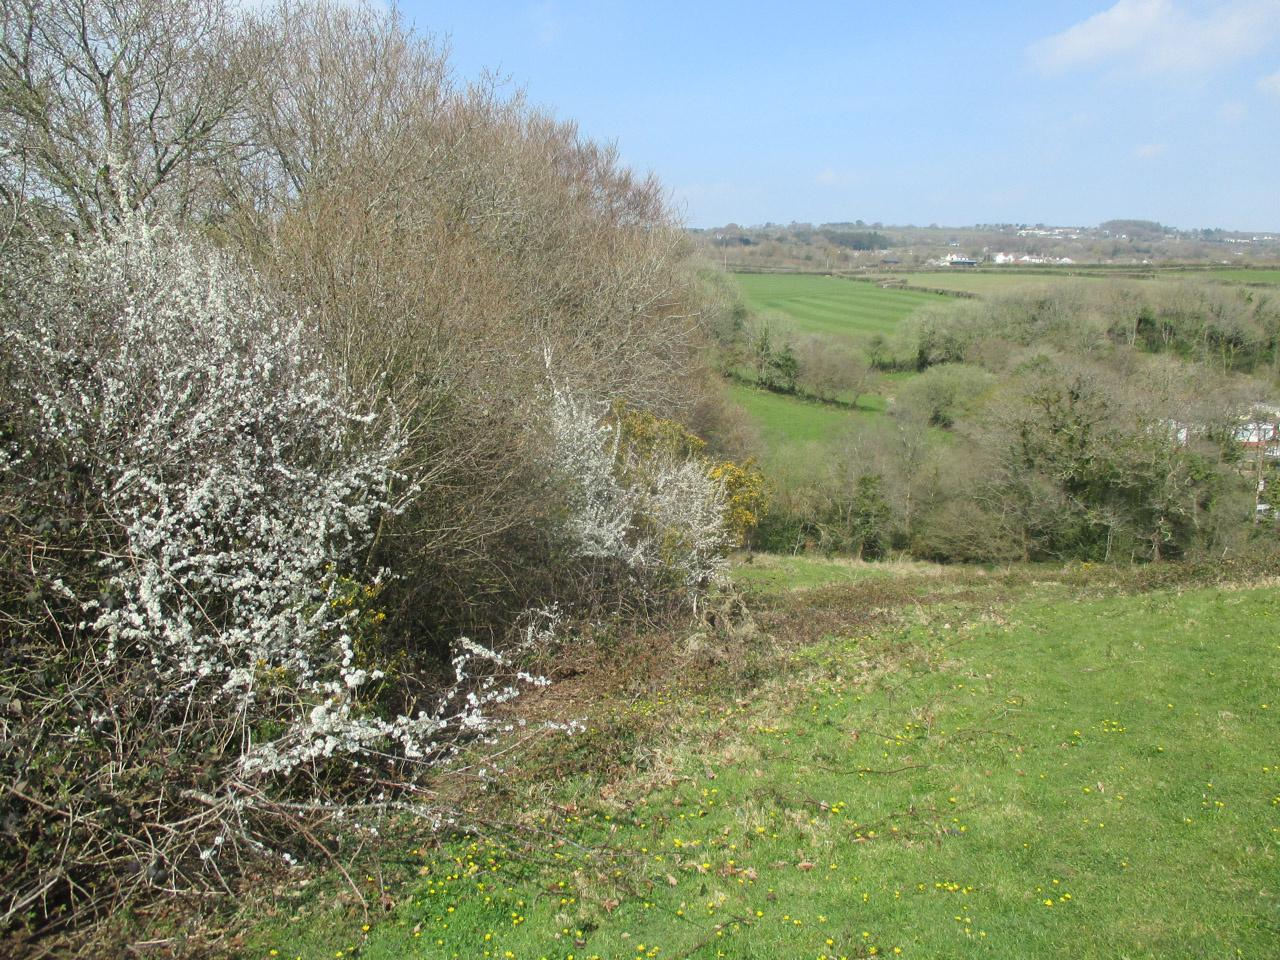 Country diary: wild flowers continue their spring advance